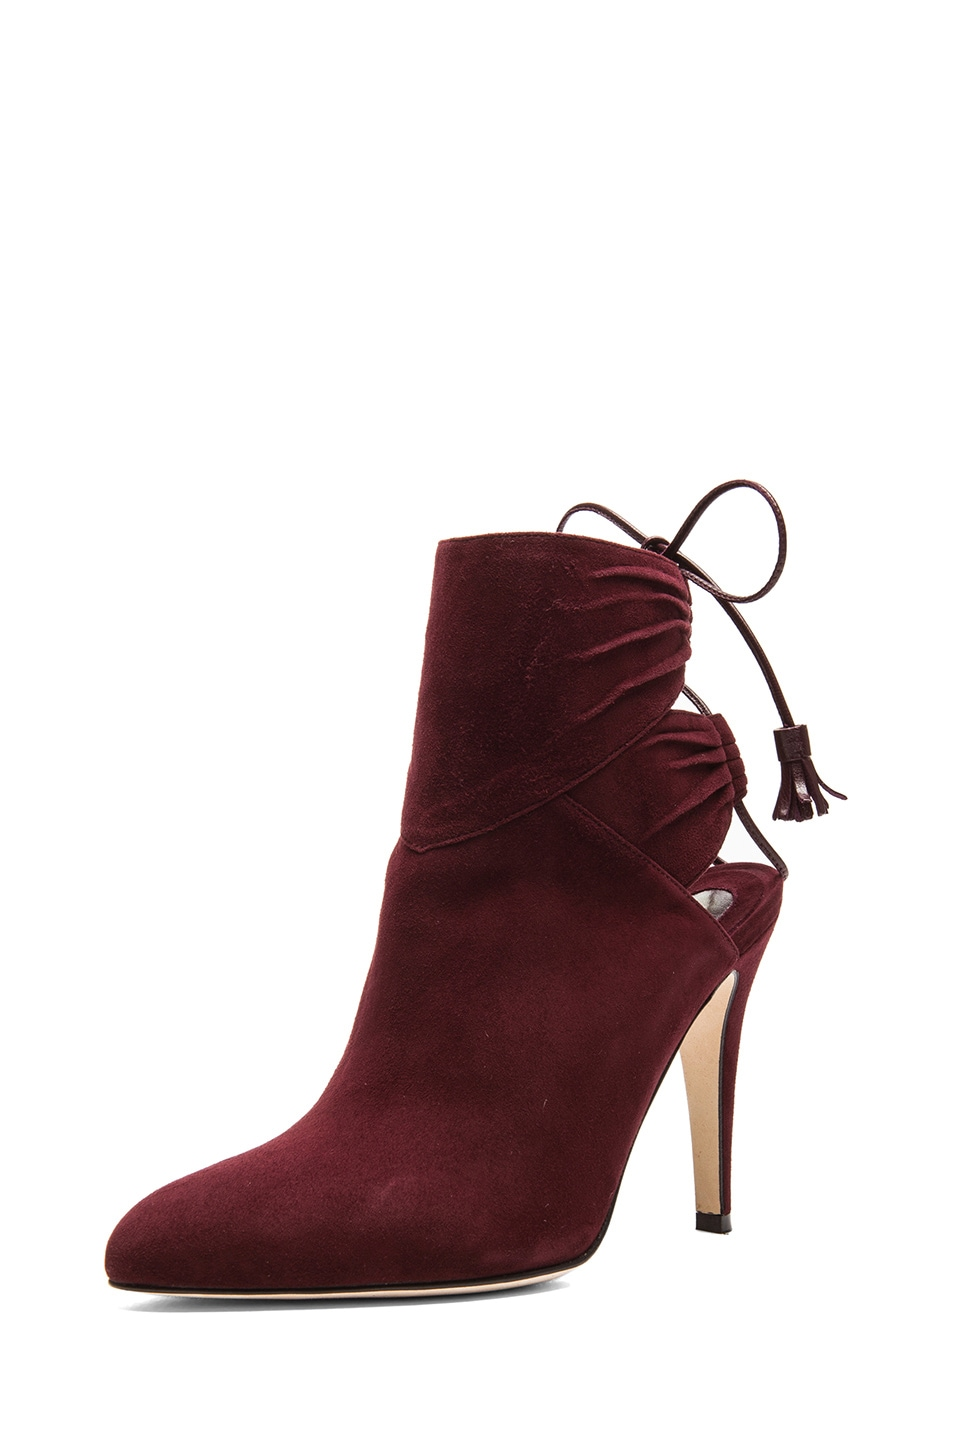 Image 2 of Brian Atwood Aron Suede Booties in Bordeaux